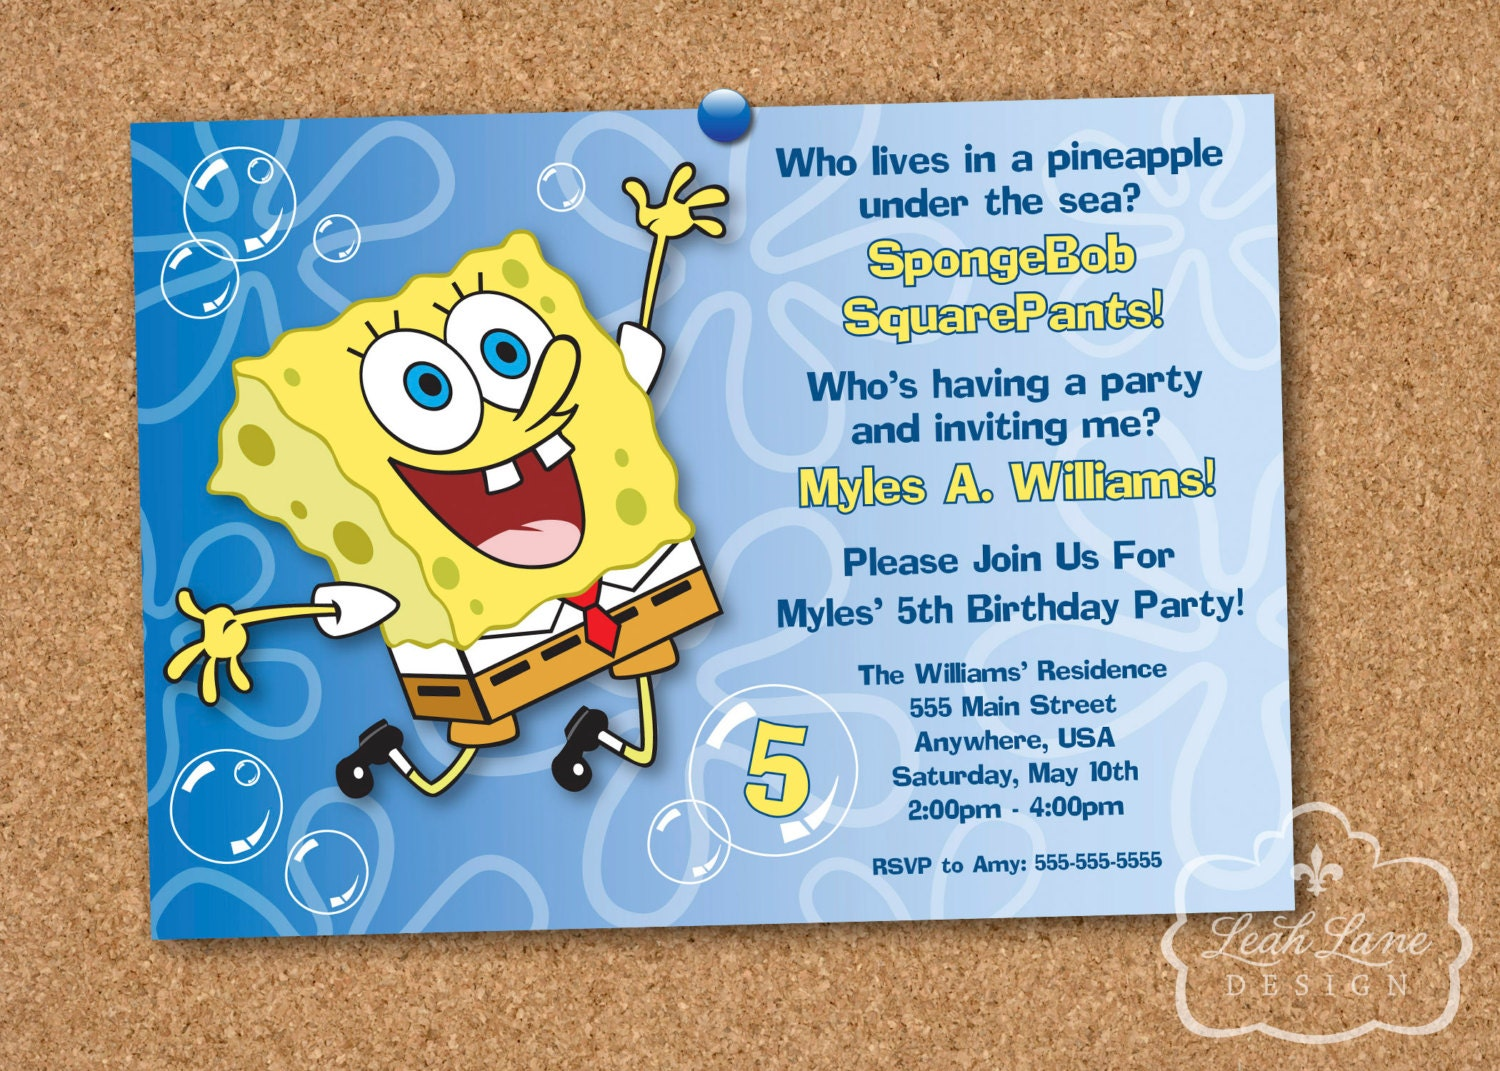 SpongeBob SquarePants Birthday Party Printable Invitation – Spongebob Party Invitations